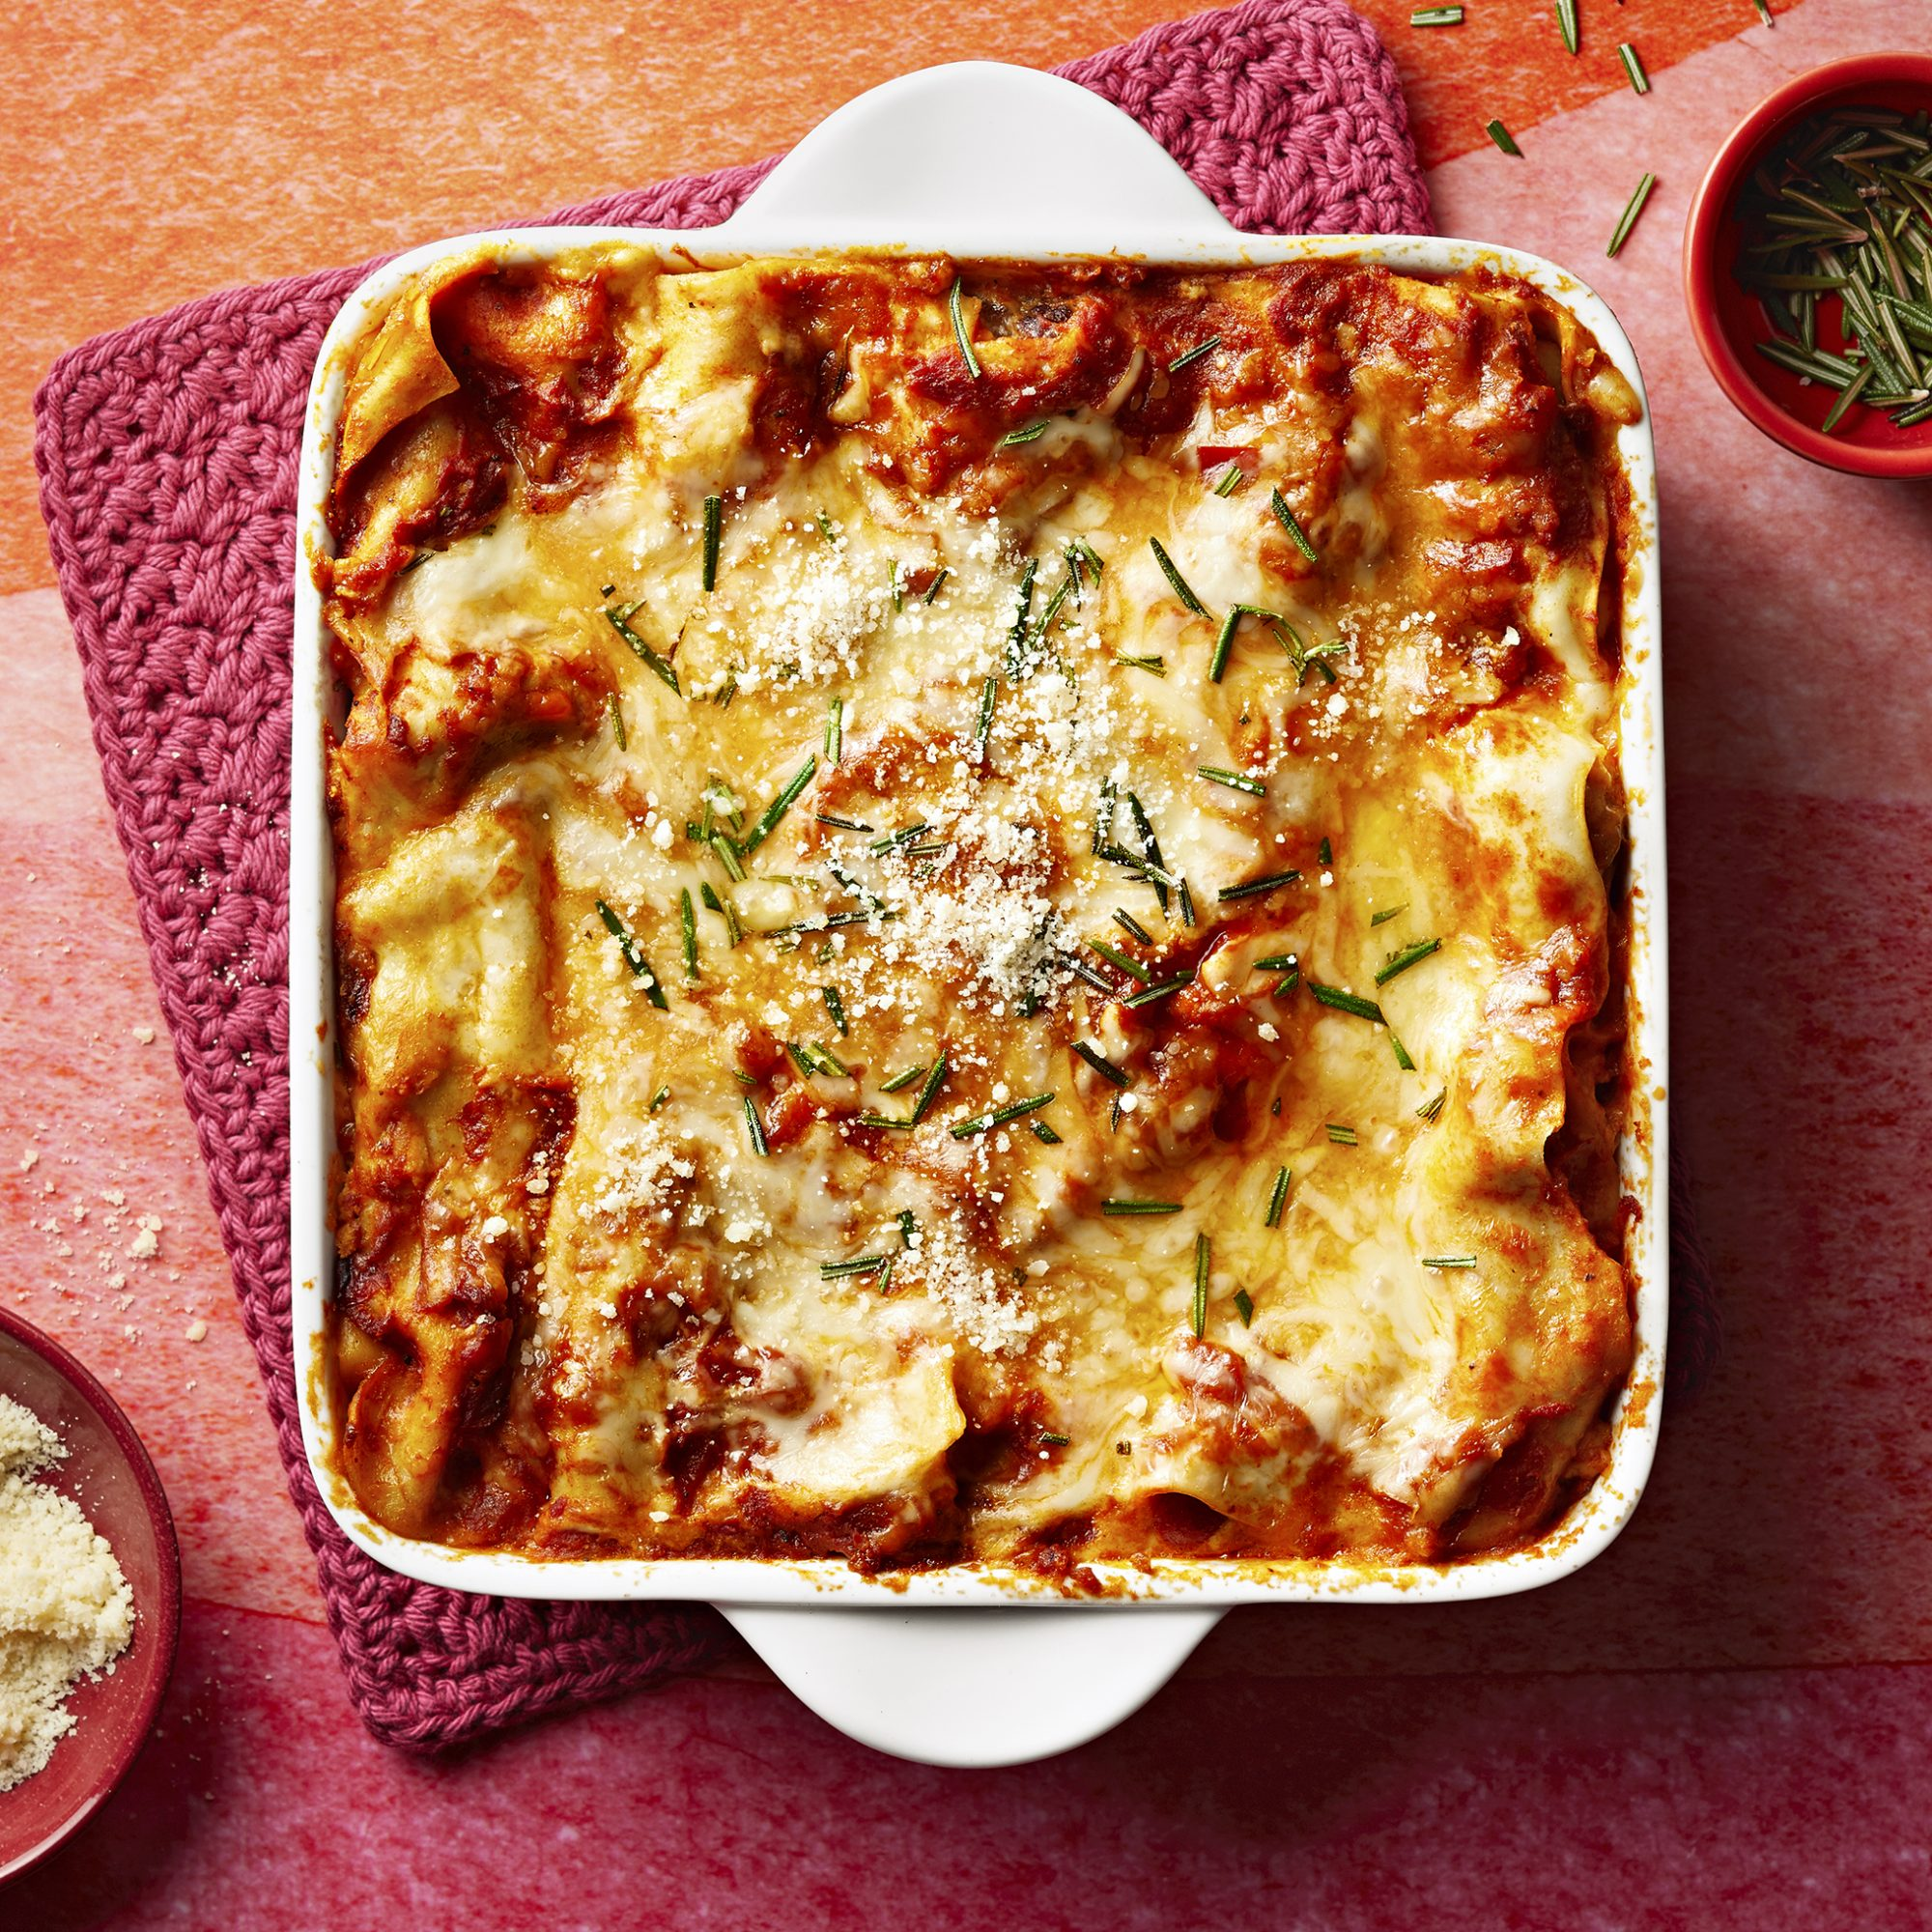 A square white casserole dish filled with Italian Sausage and Mushroom Lasagna with Bechamel Sauce